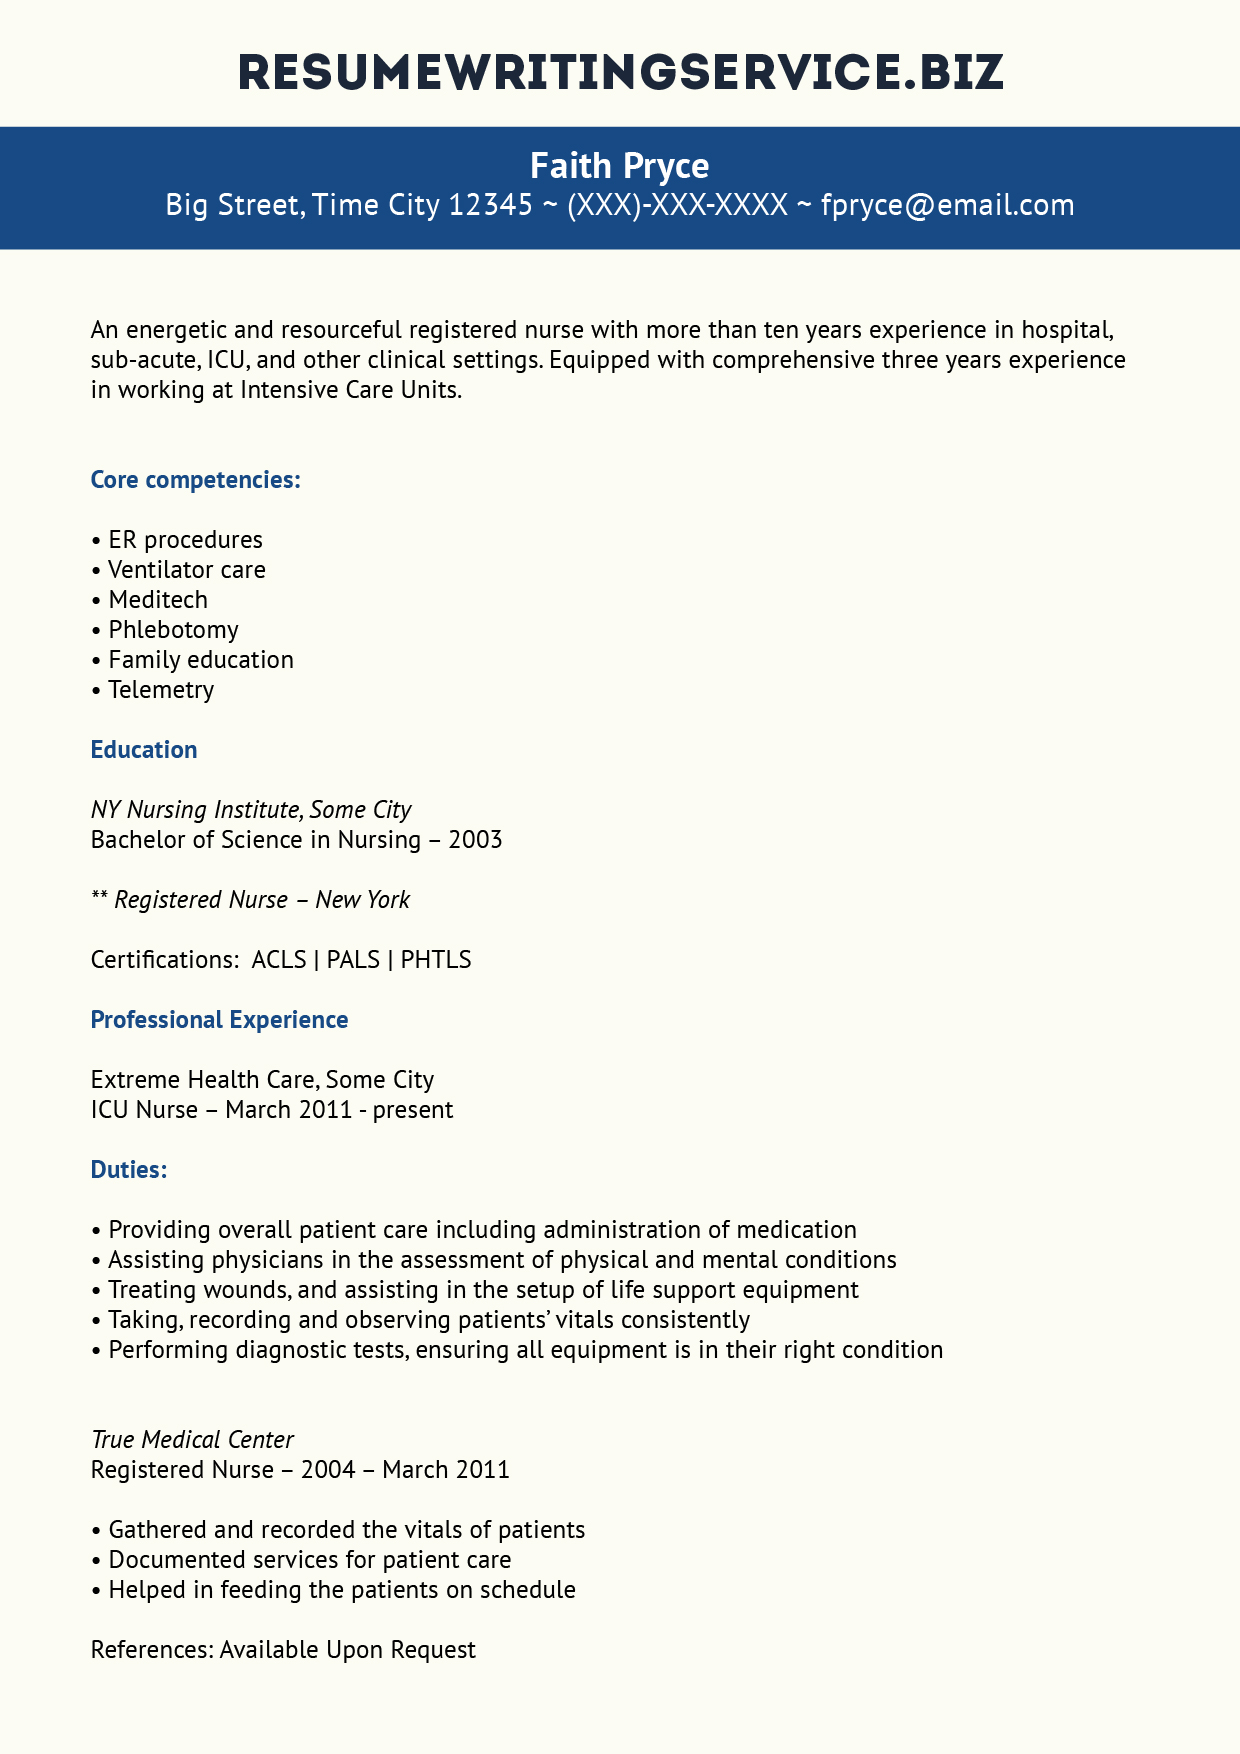 sample cv for icu nurse sample customer service resume sample cv for icu nurse staff nurse sample cv example mike kelley you also like